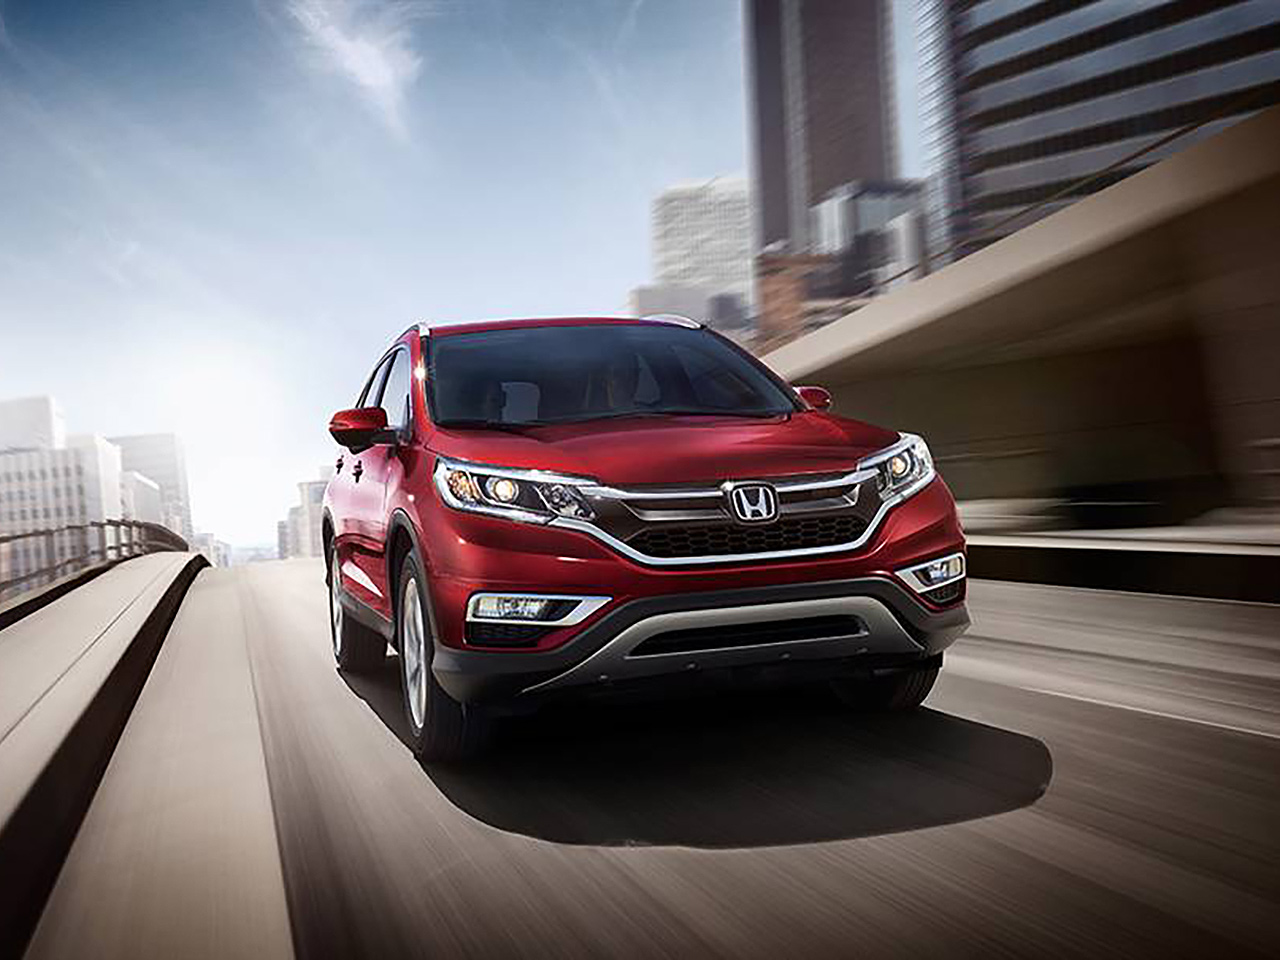 Exterior View Of 2016 Honda CR-V in Los Angeles